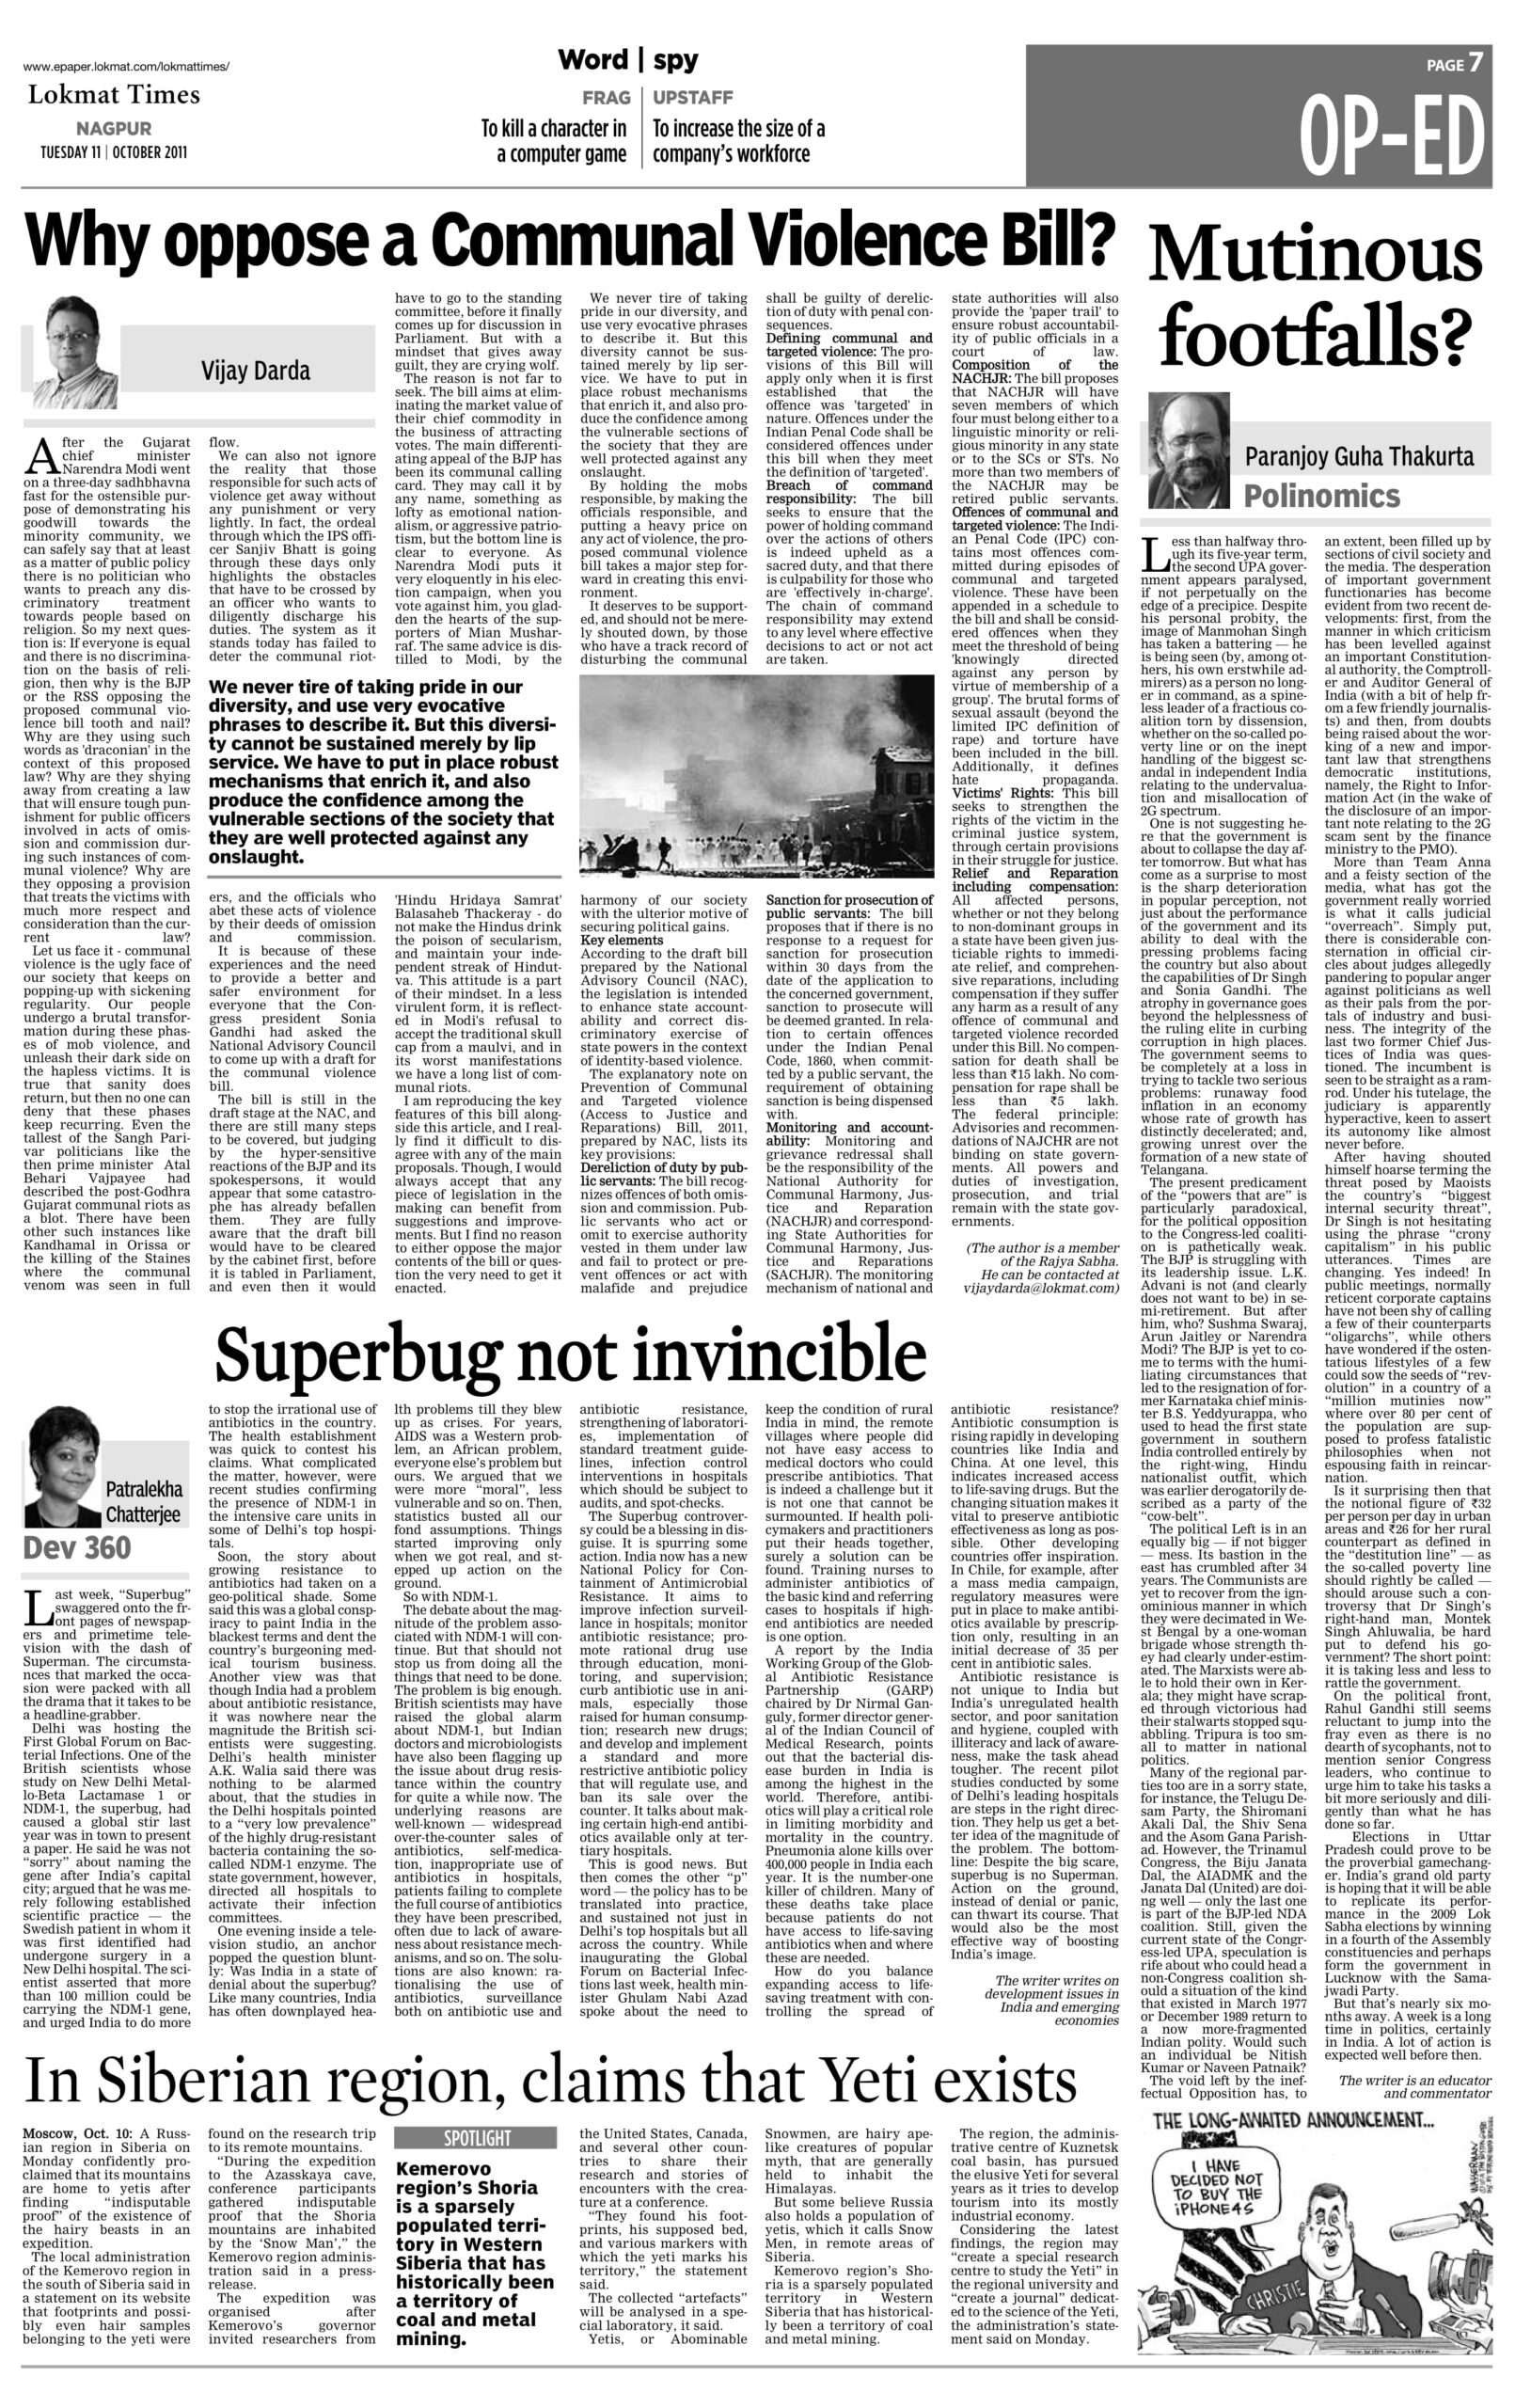 Why oppose a Communal Violence Bill?